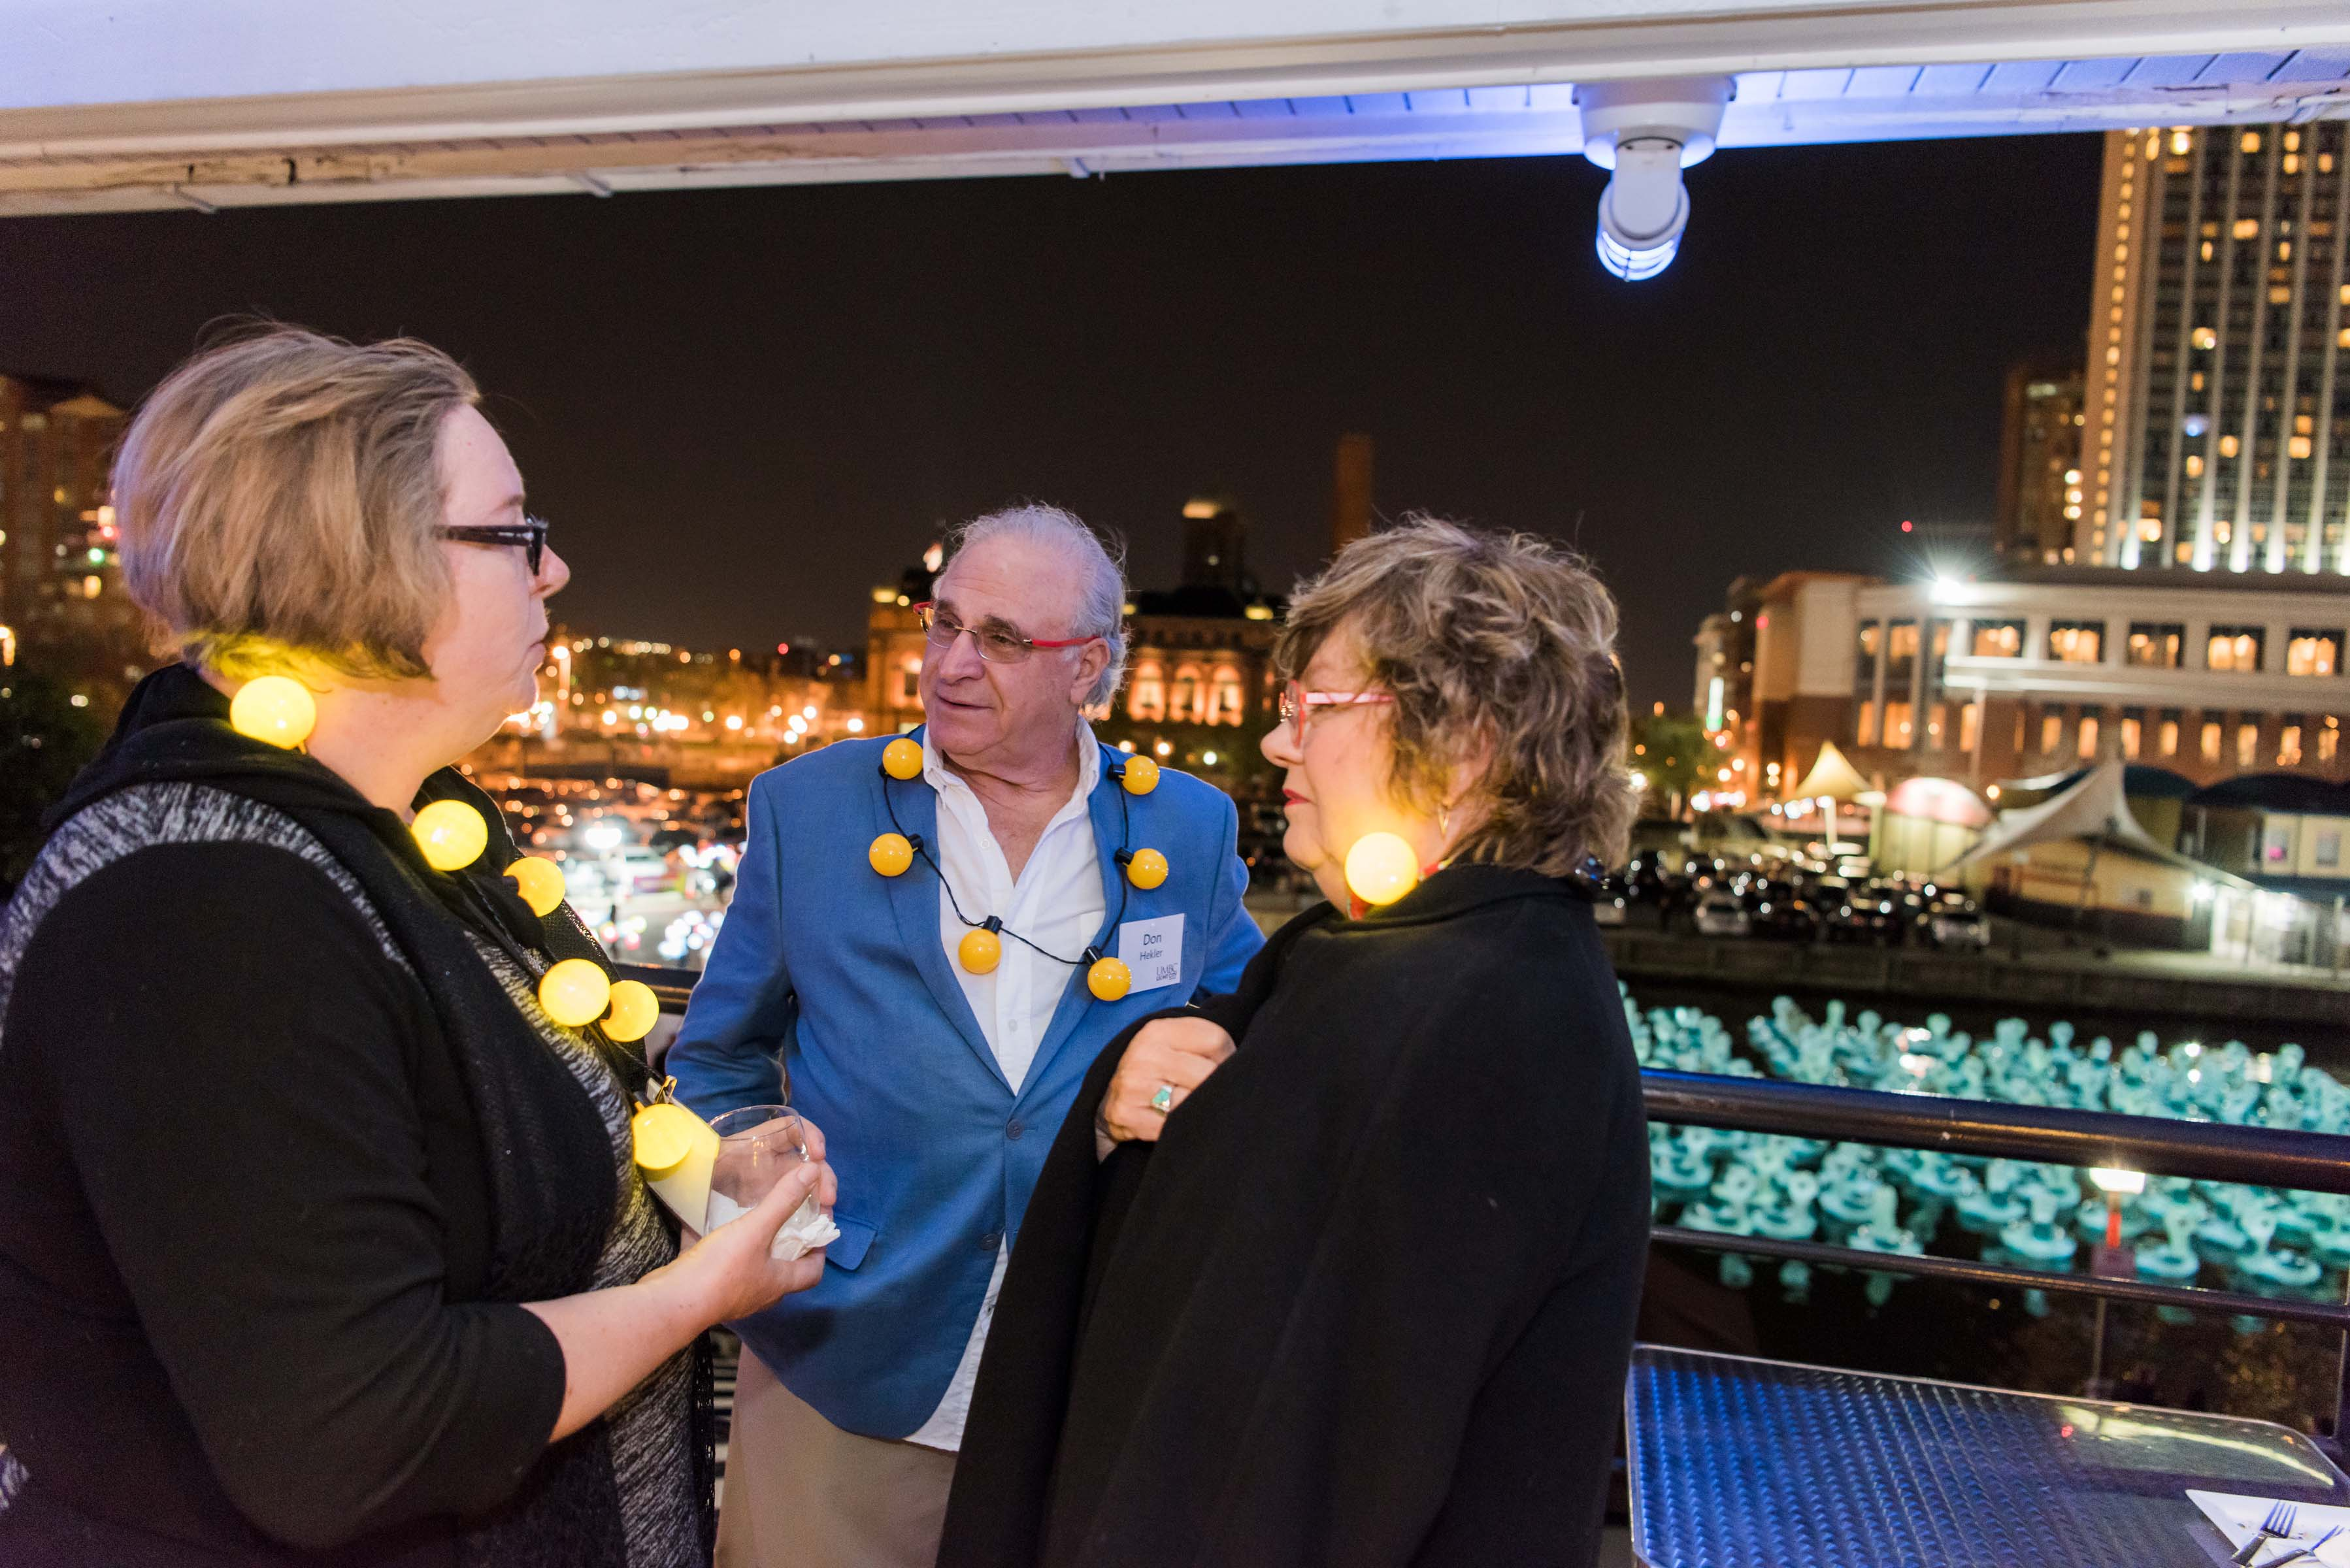 People with bulbs around their necks talk at Light city reception